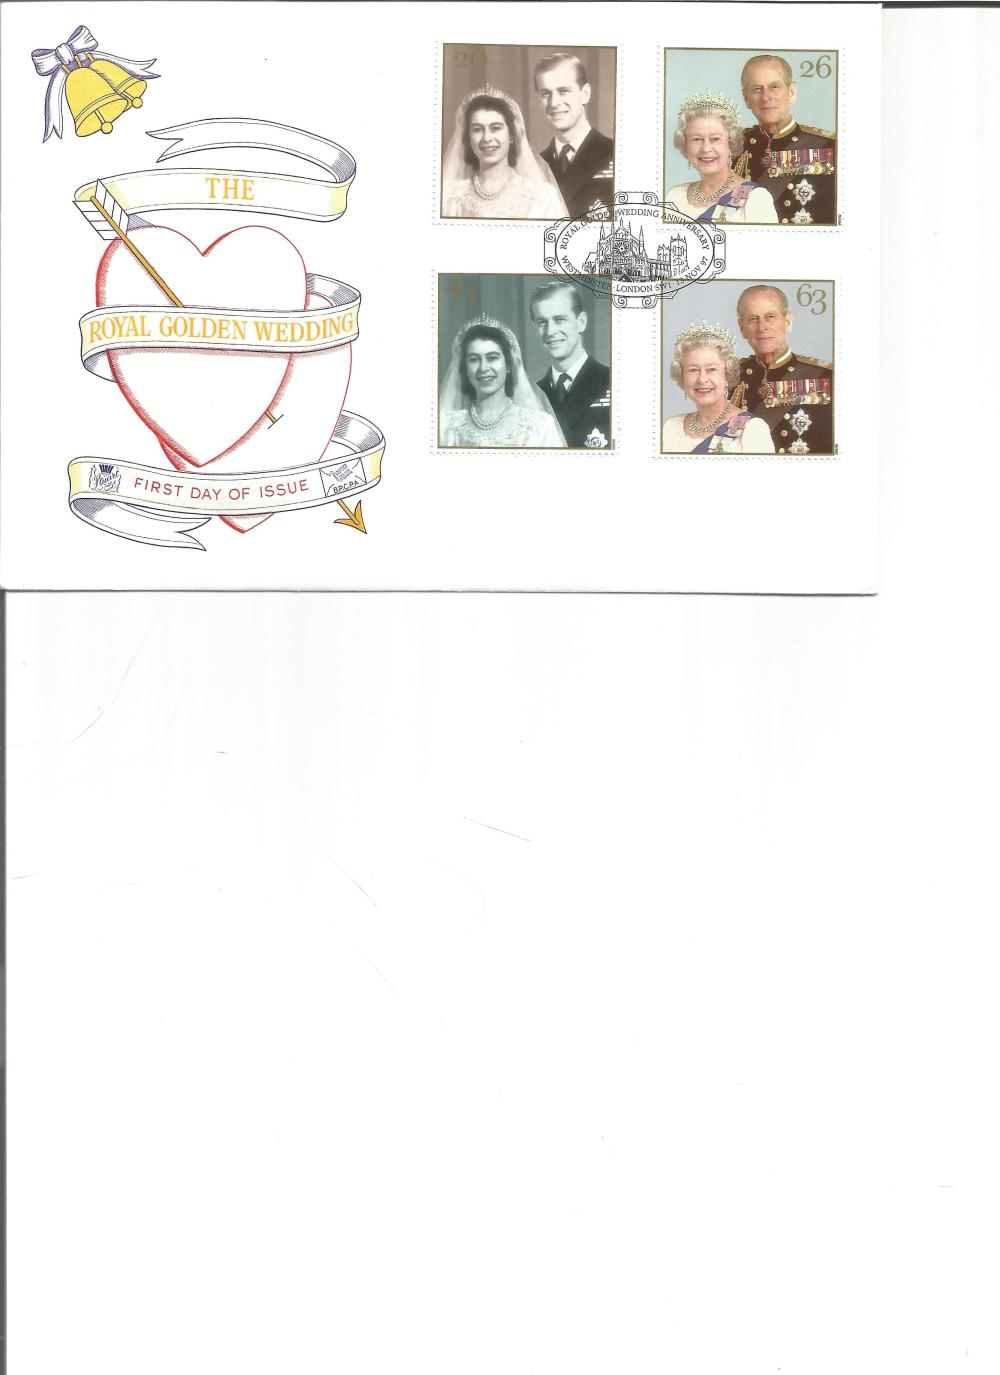 FDC The Royal Golden Wedding c/w set of four stamps PM Royal Golden Wedding Anniversary,